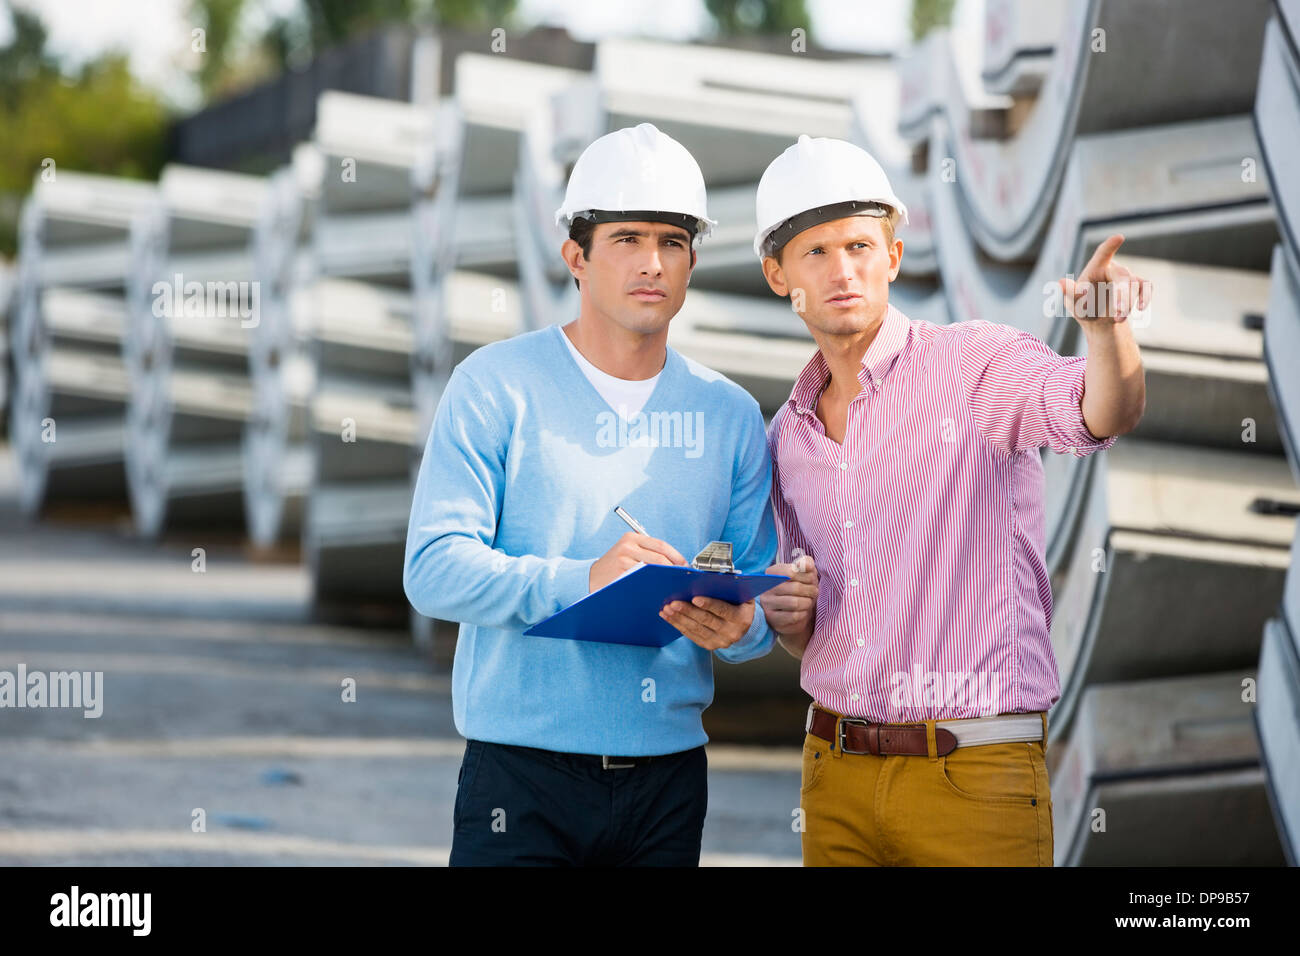 Architects inspecting stock at site - Stock Image